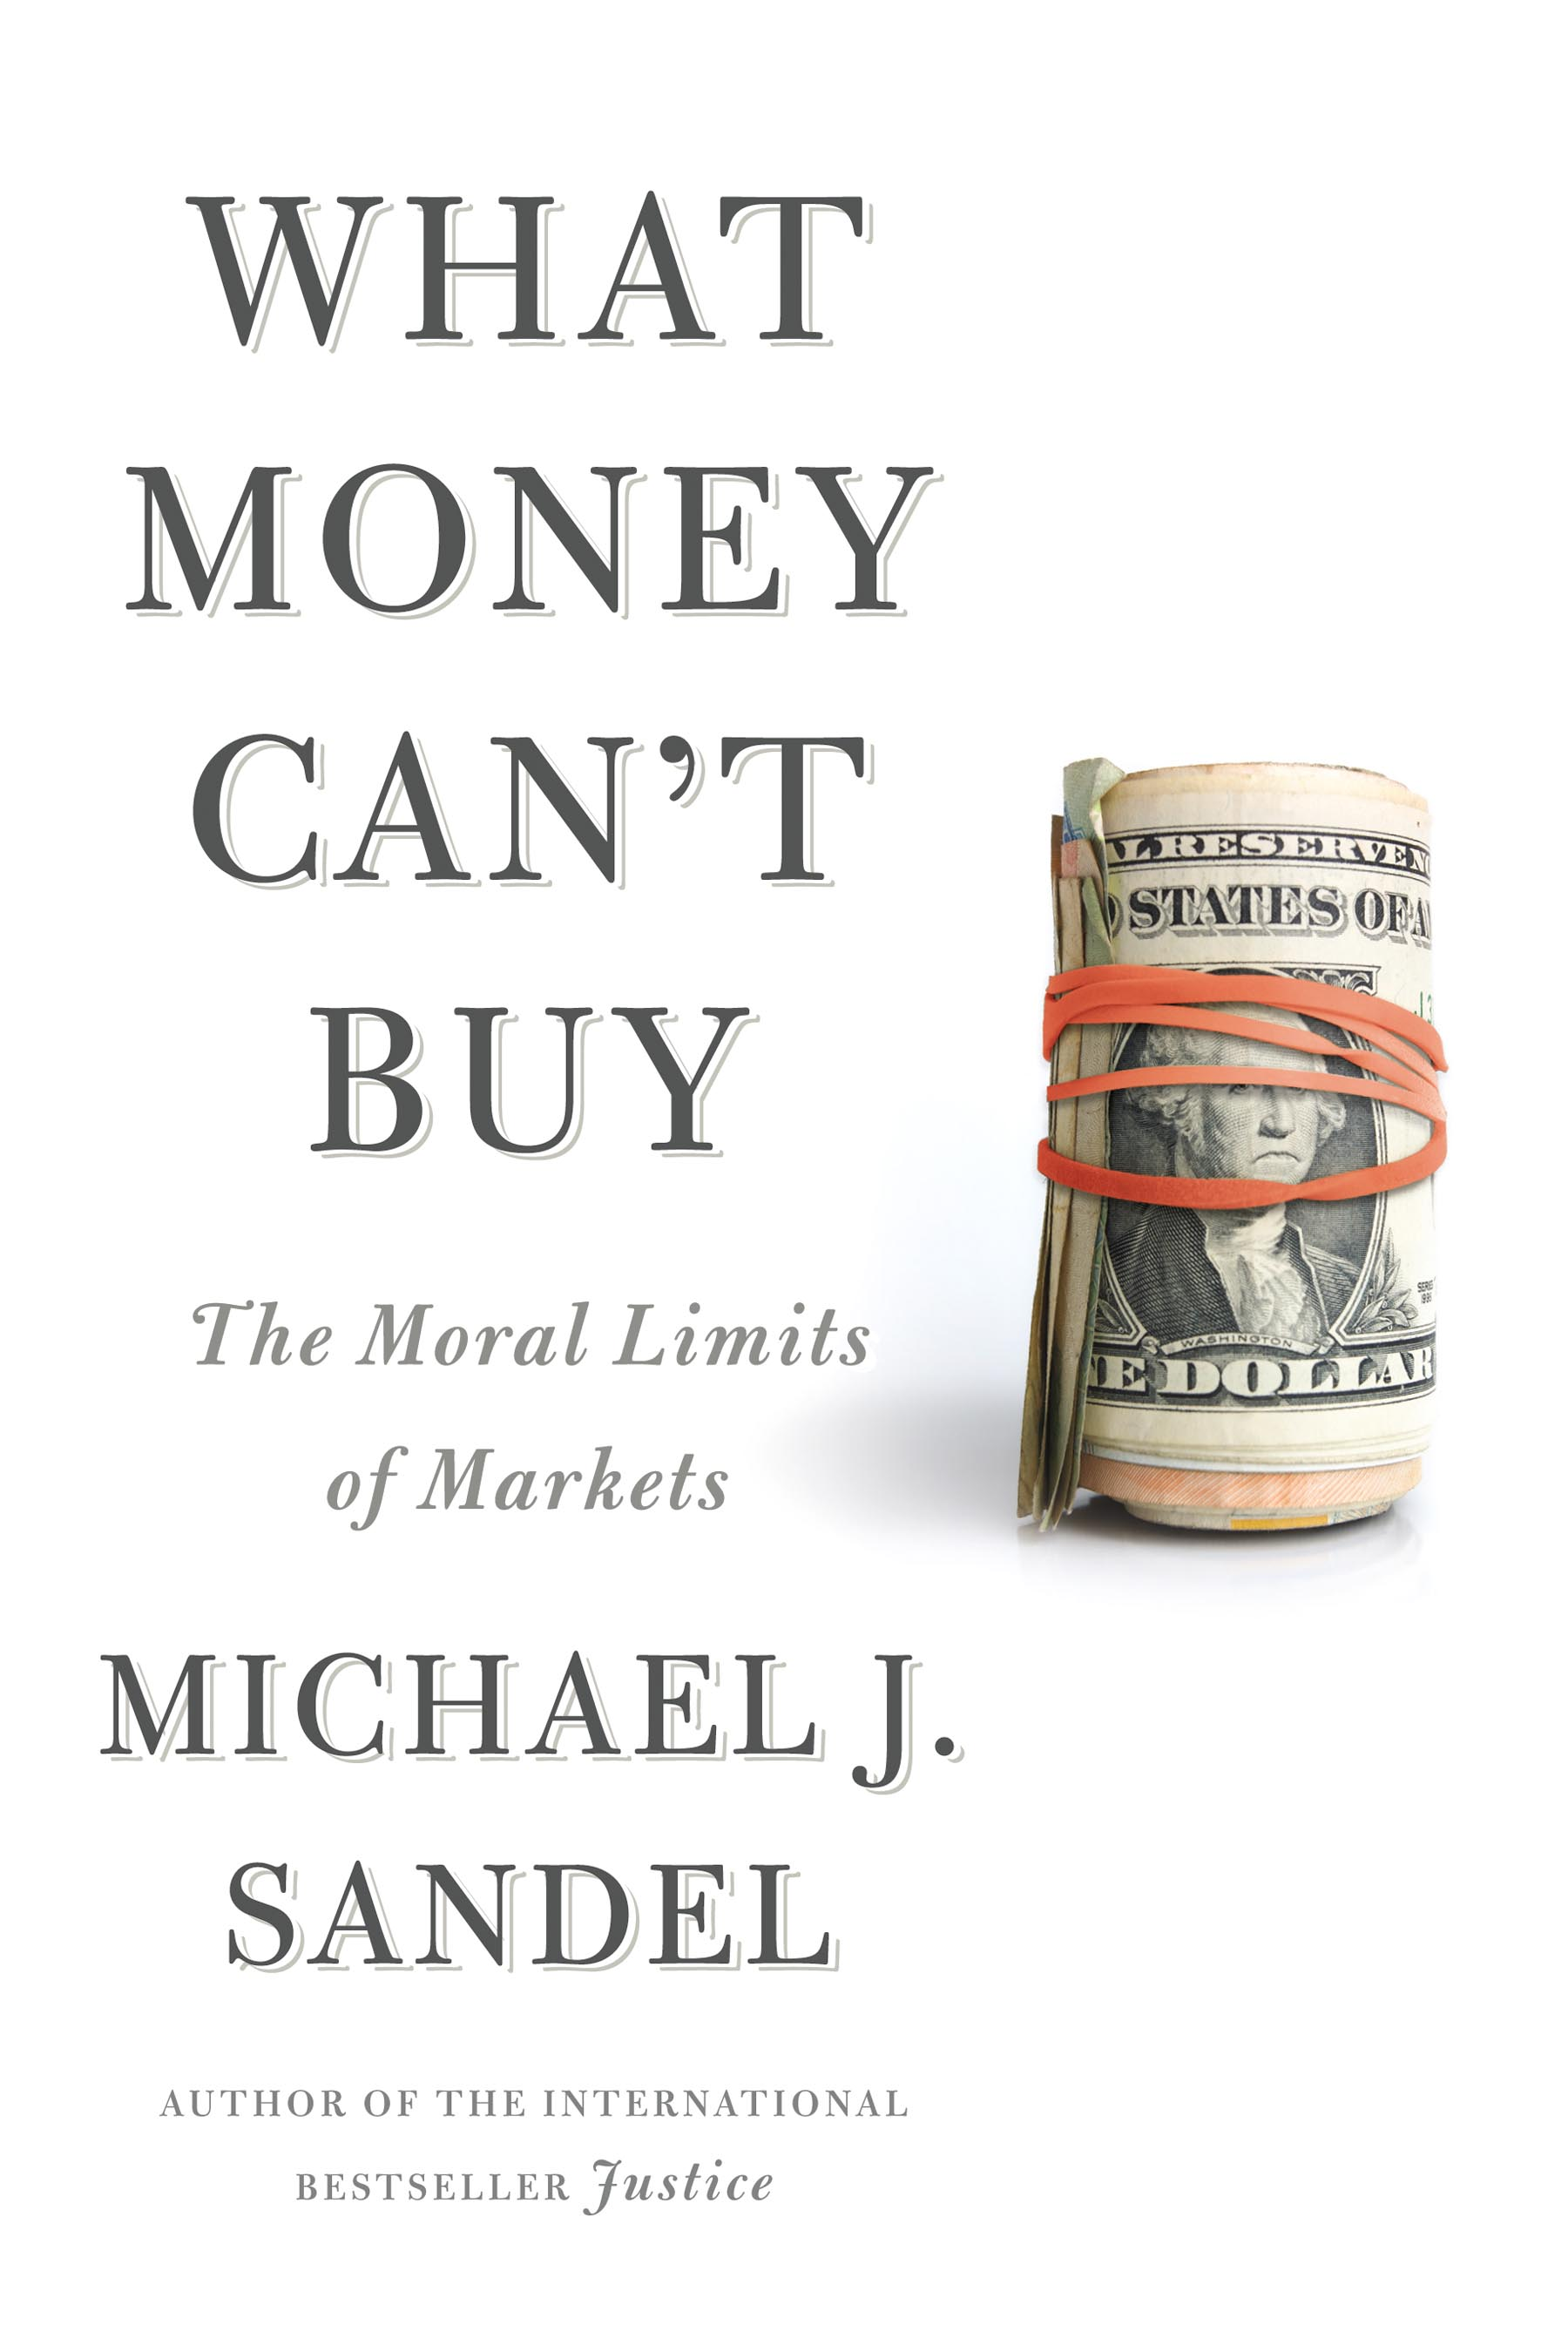 michael sandel what money can t buy the moral limits of markets  640 whatmoneycantbuy final jpg